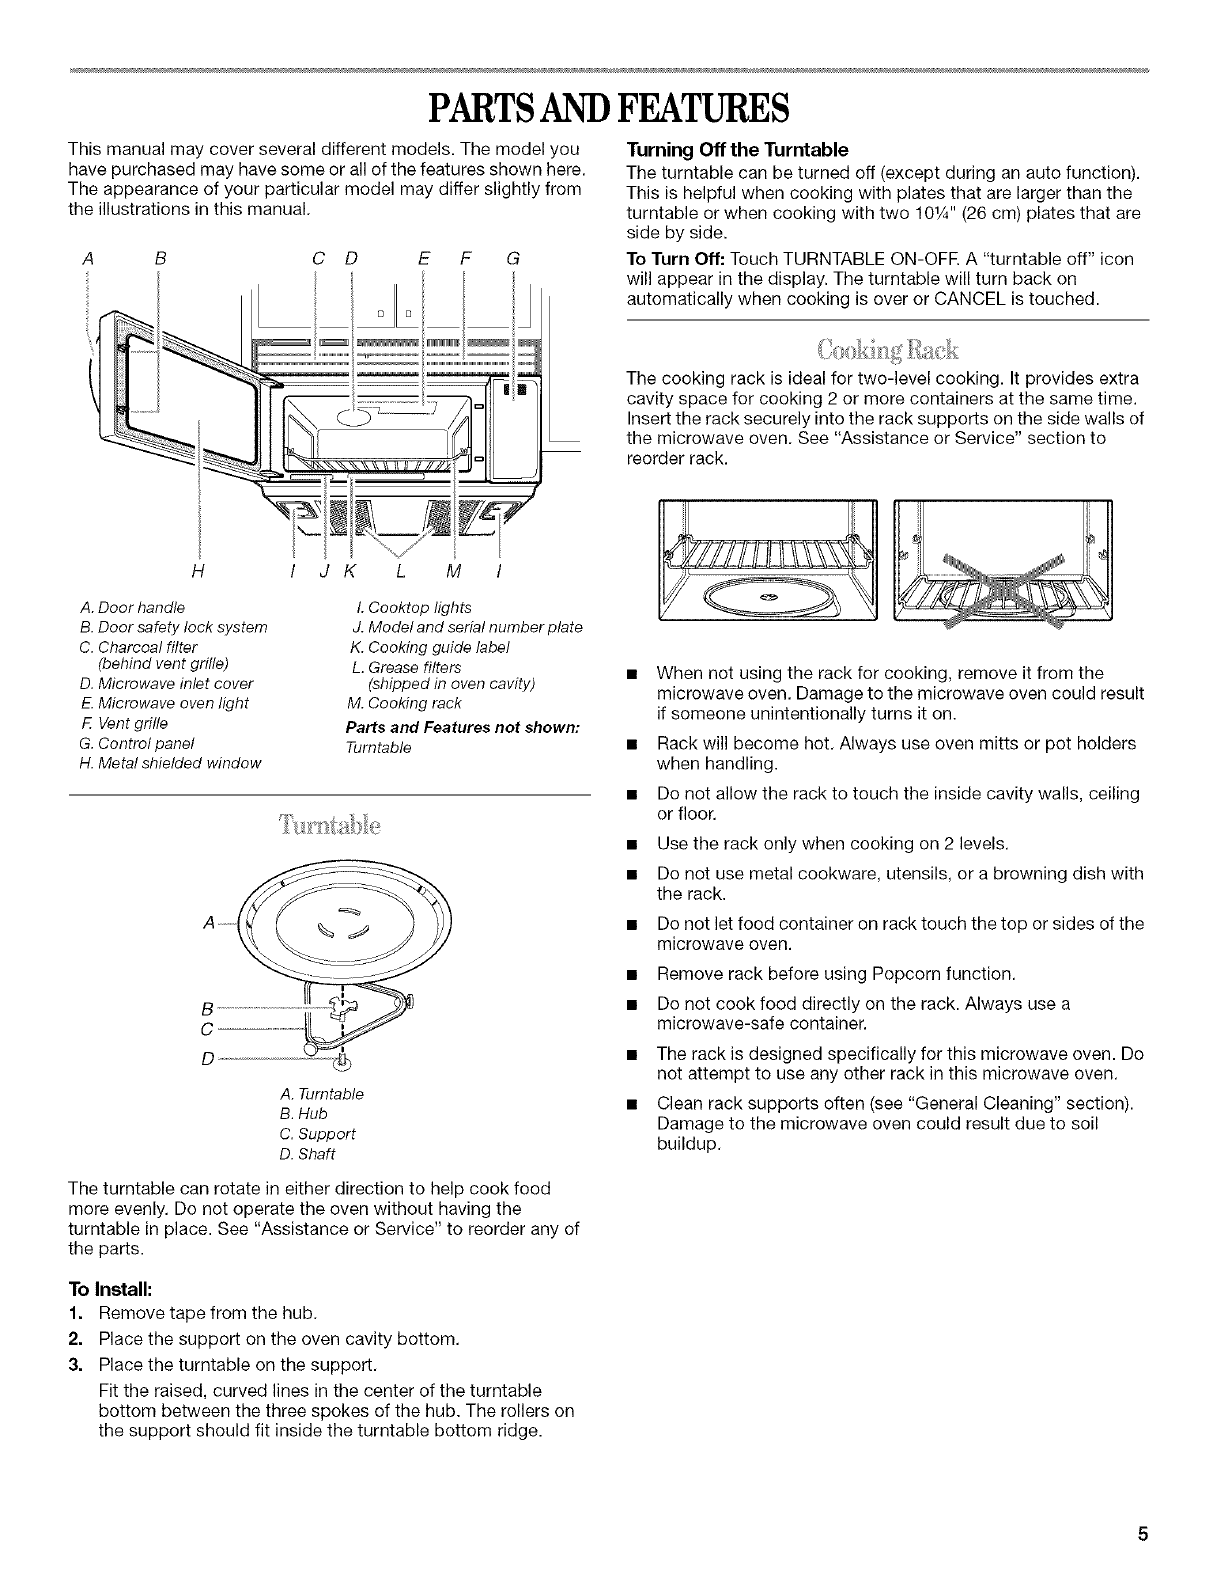 manual microwave manuals and guides